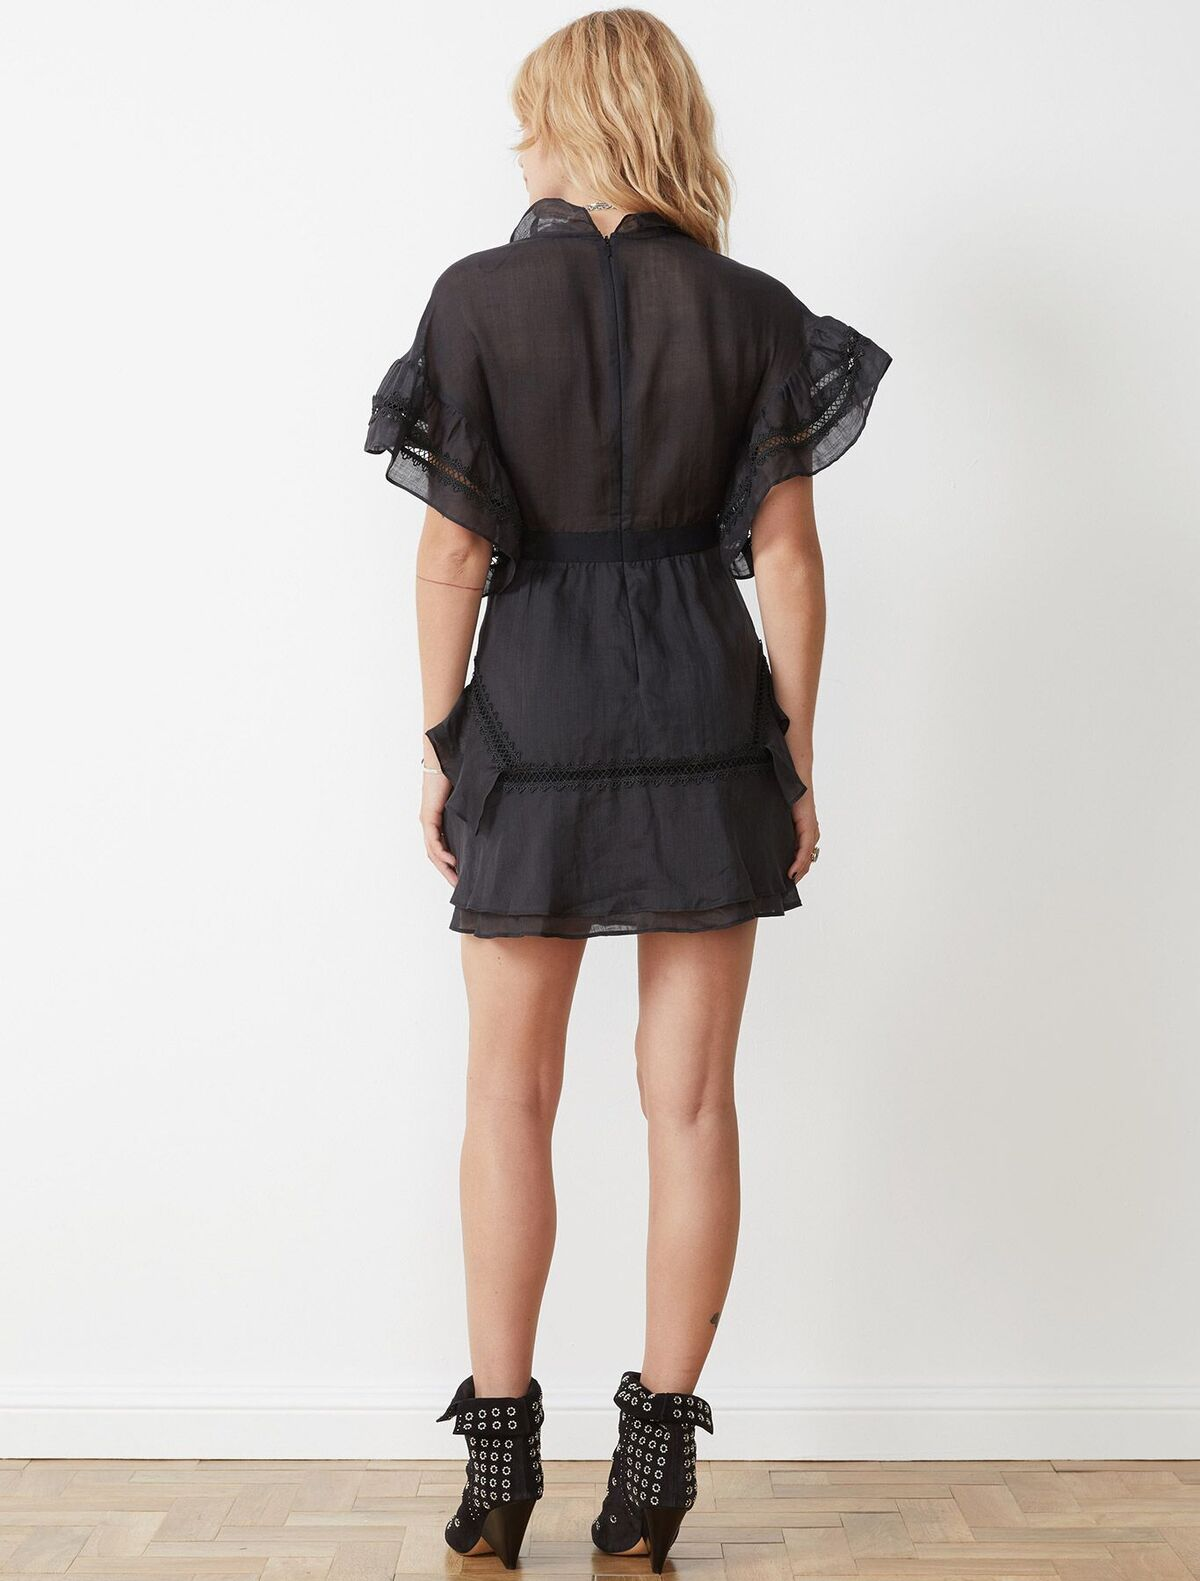 Stevie May Fleur Mini Dress - Stevie May, The East Order, Talulah, Pasduchas, Everly Collective